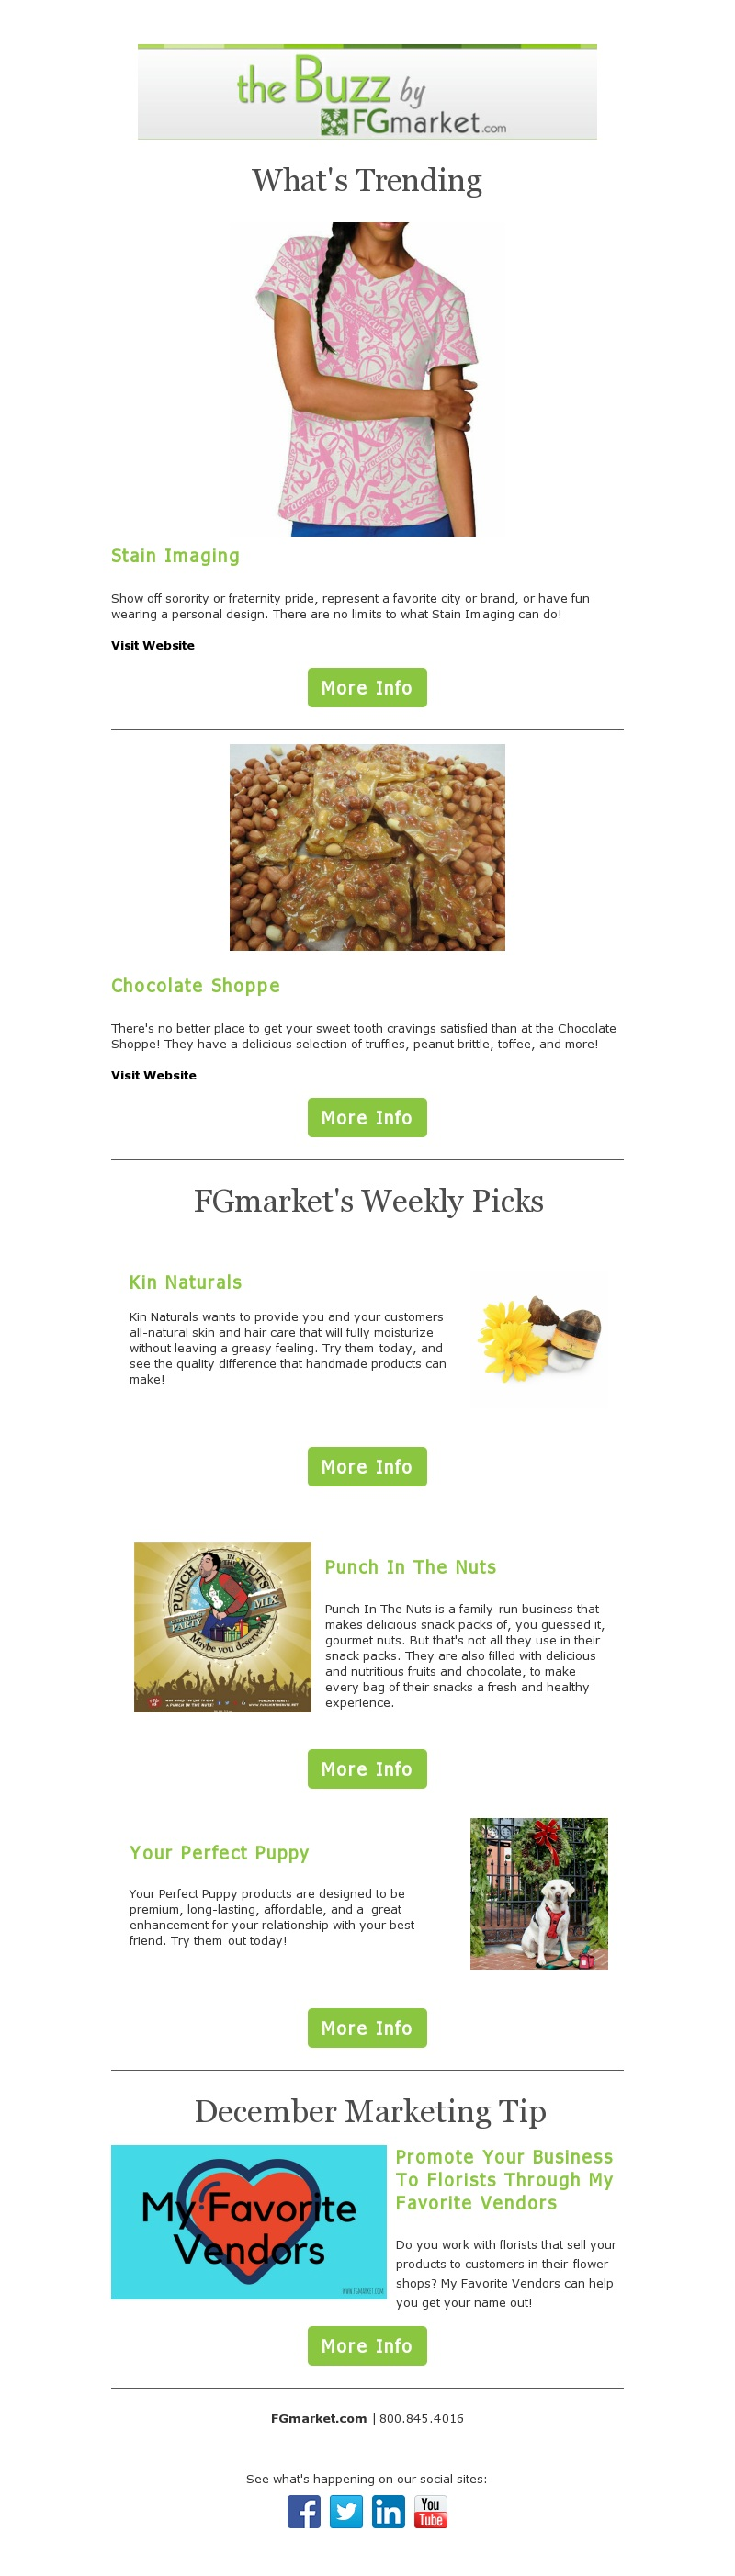 FGmarket December Newsletter: A Punch In The Nuts and My Favorite Vendors